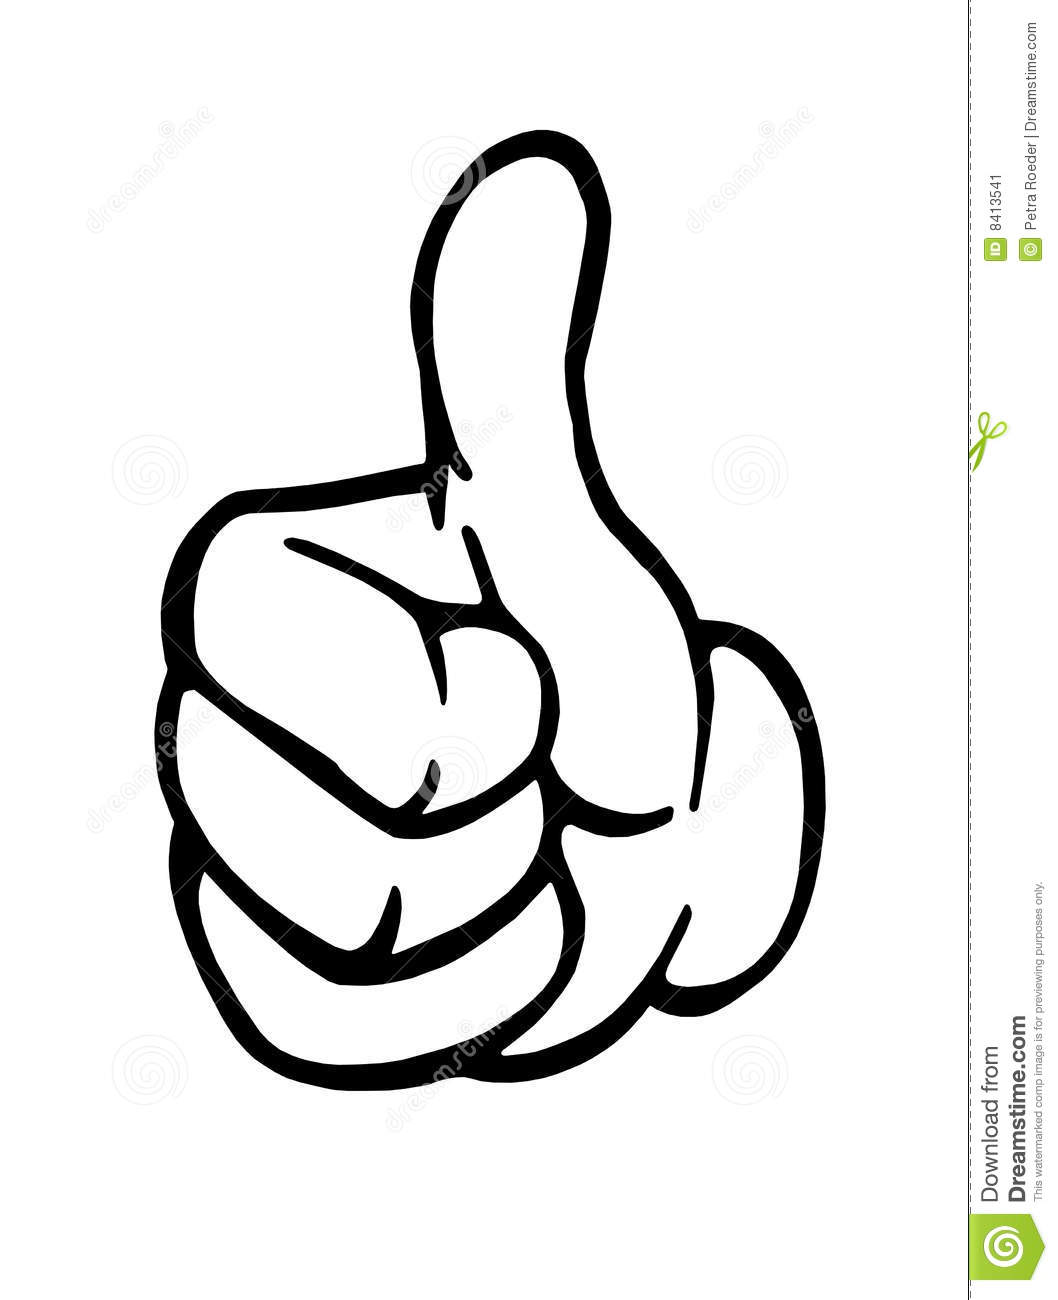 1058x1300 Thumbs up hand clipart